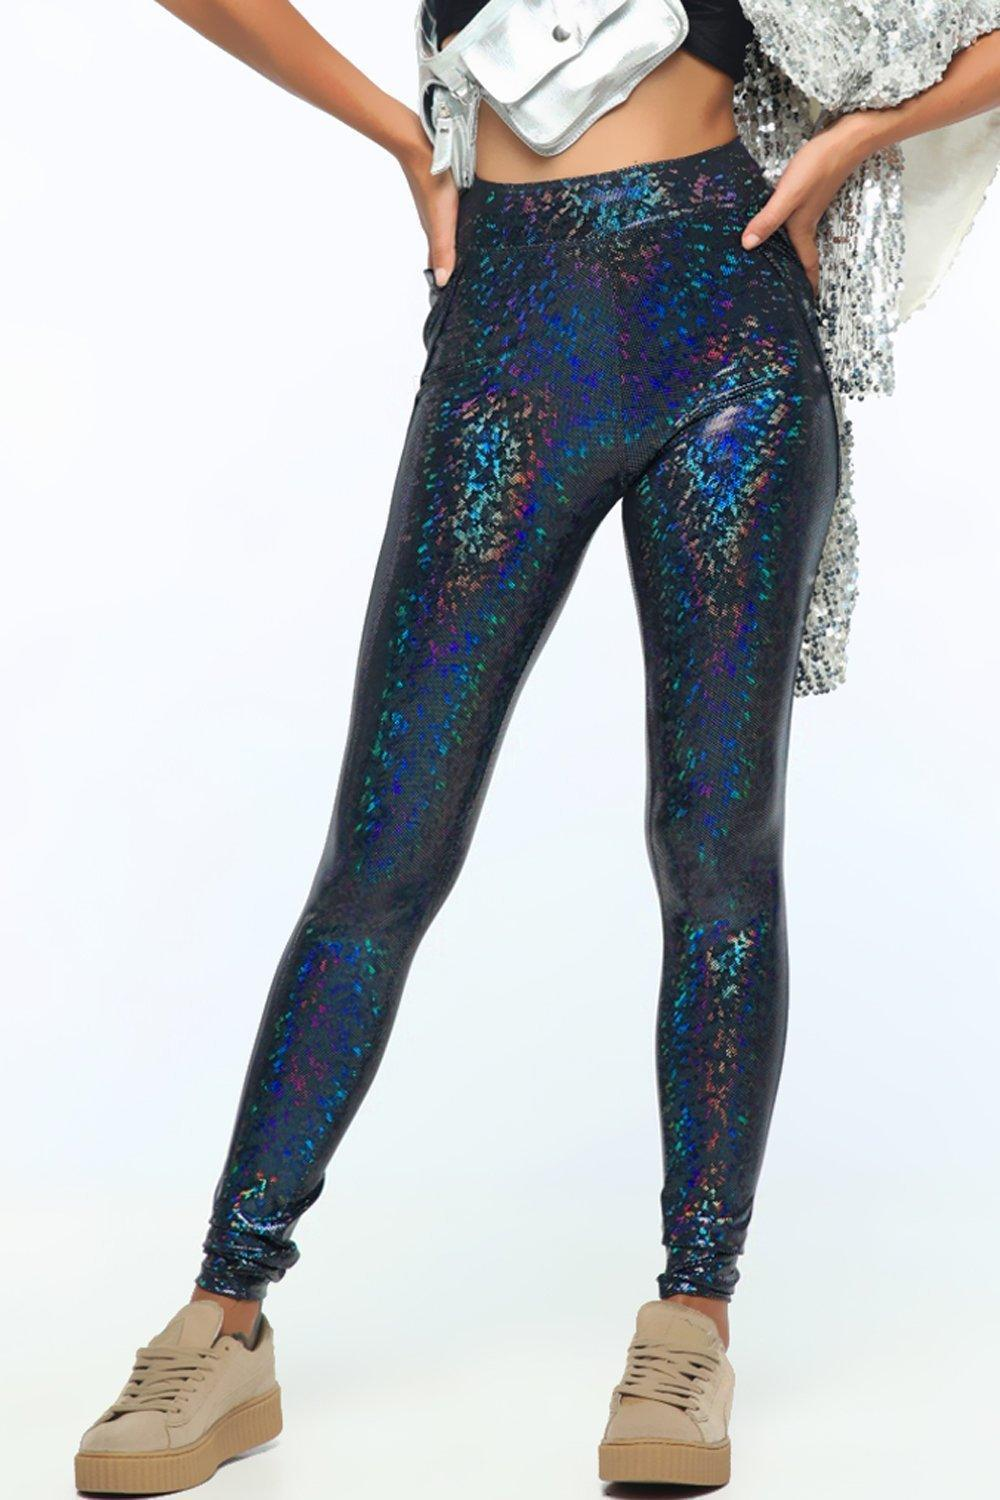 3c4d7a44f2a Sea Dragon Studio - Holographic High-Waisted Leggings With Pockets ...